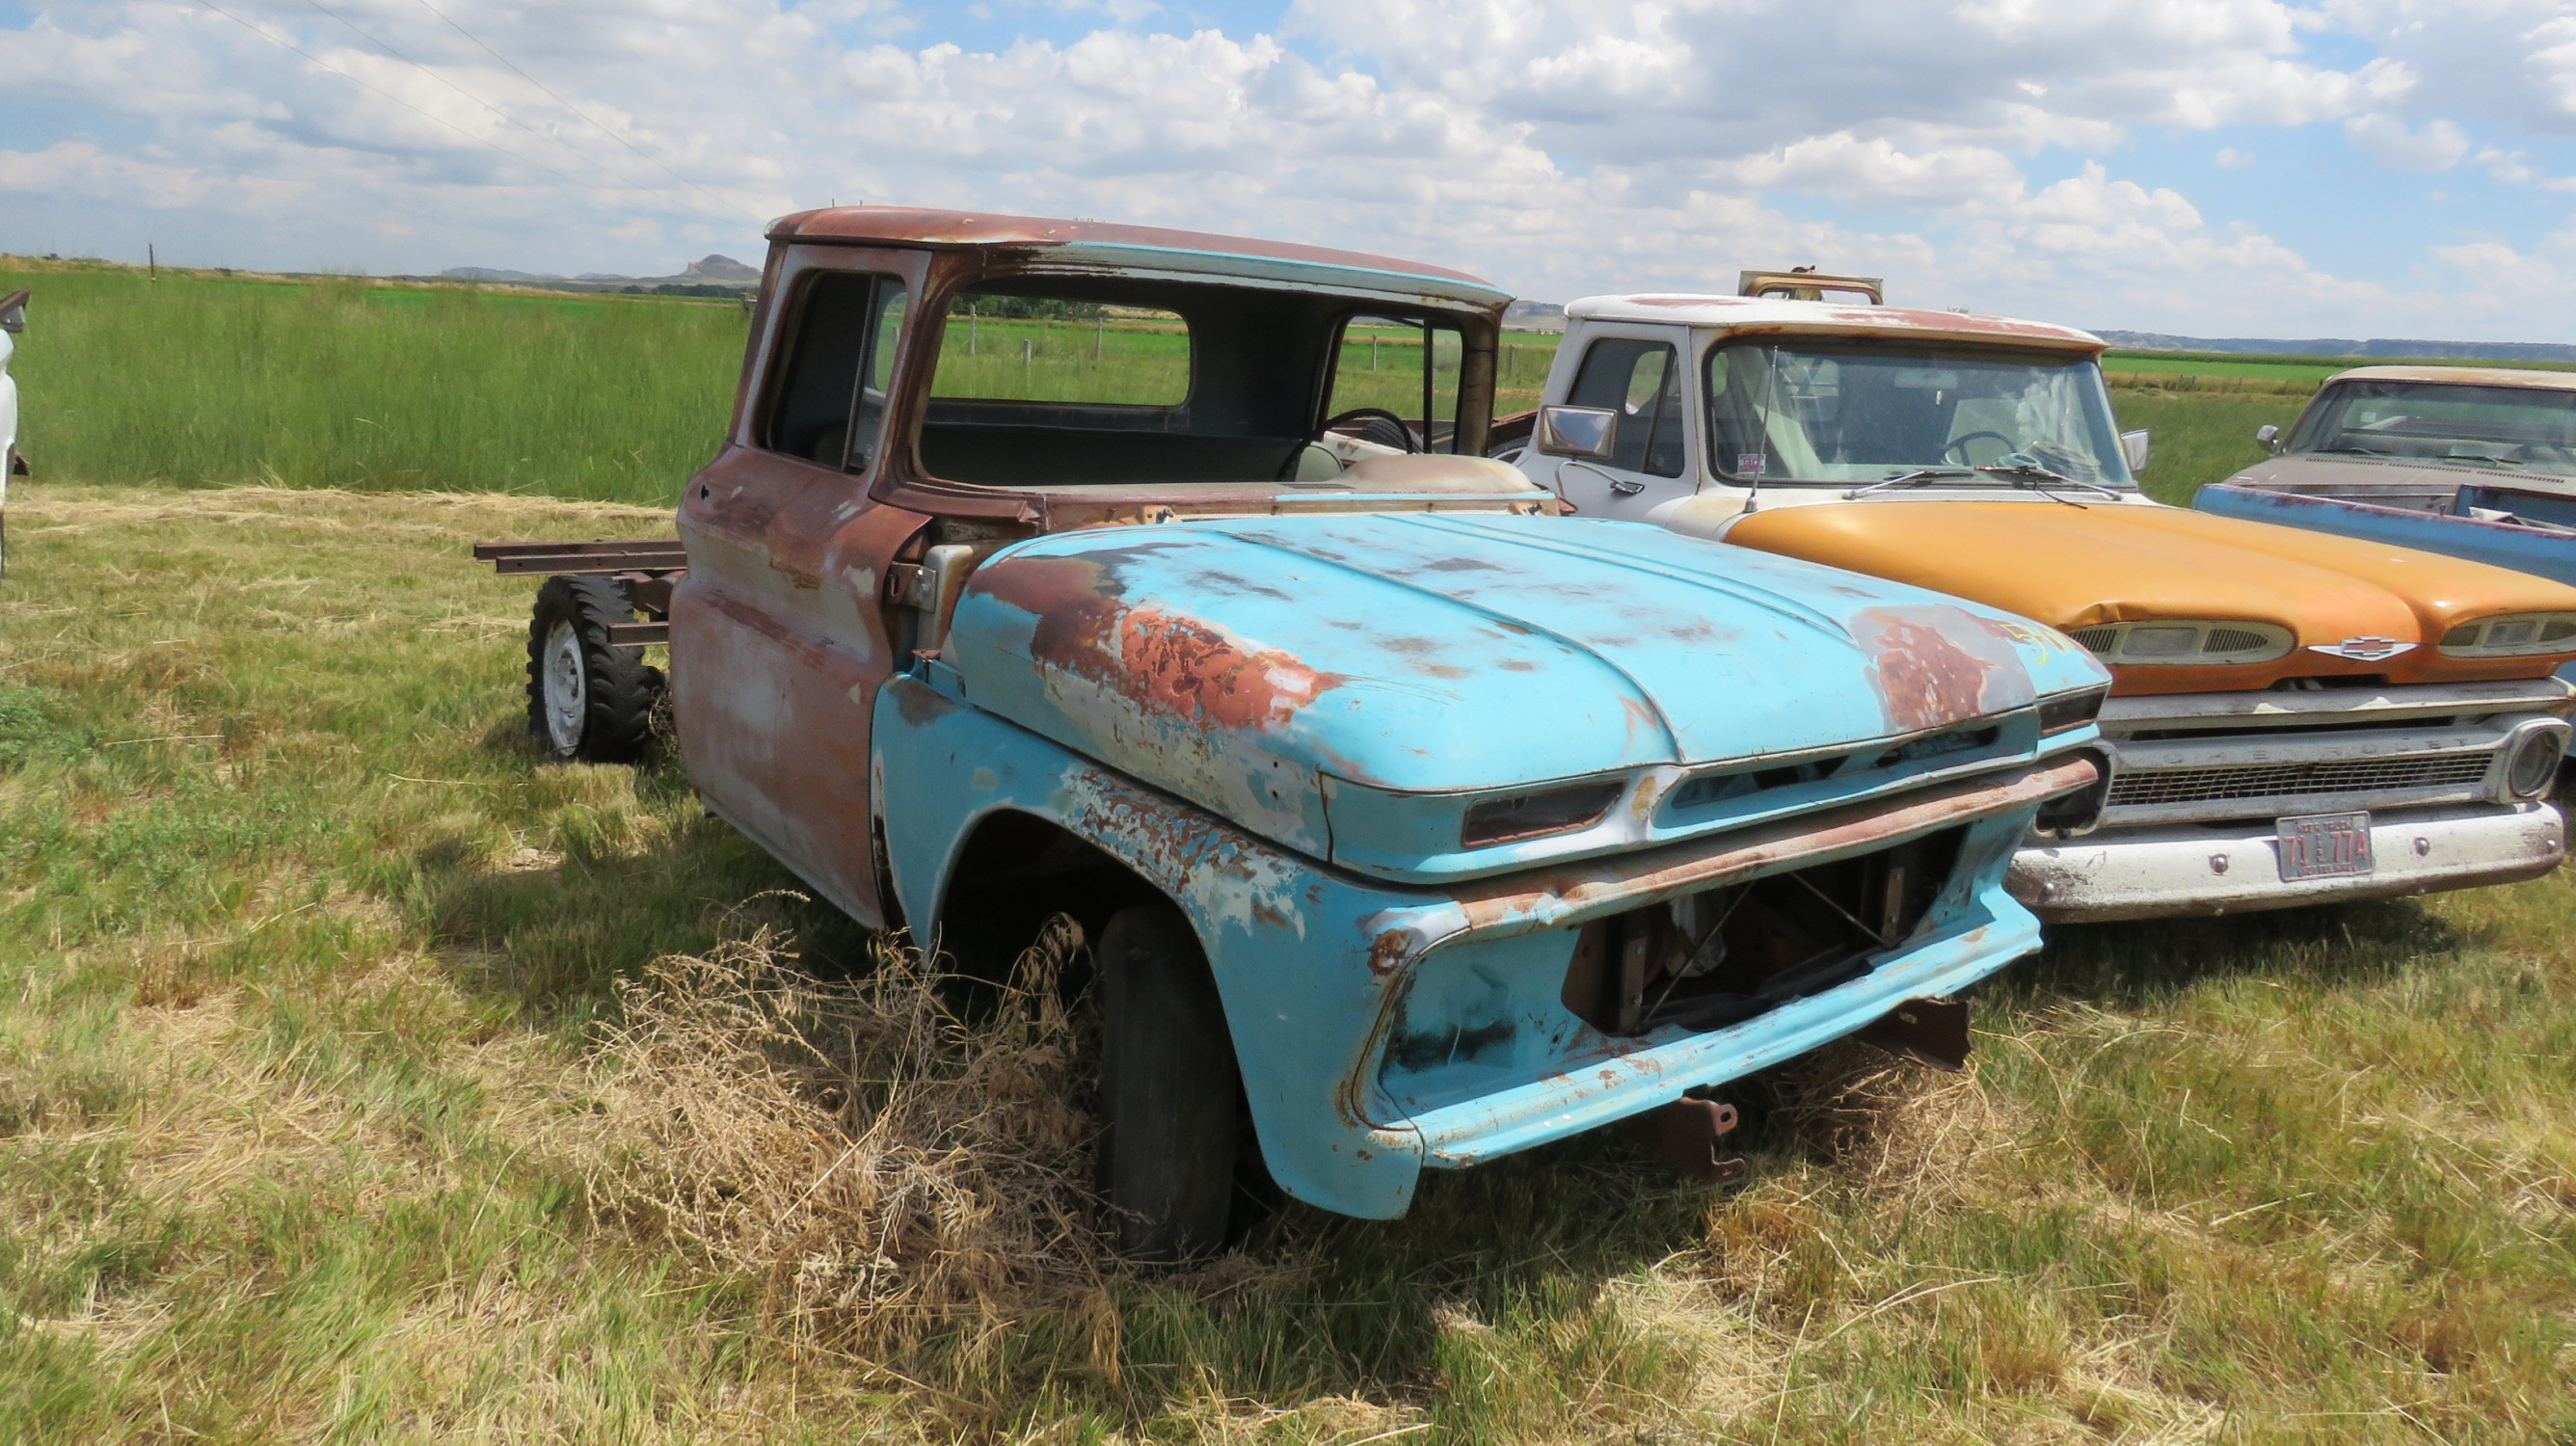 GMC PICKUP FOR PROJECT OR PARTS - Image 1